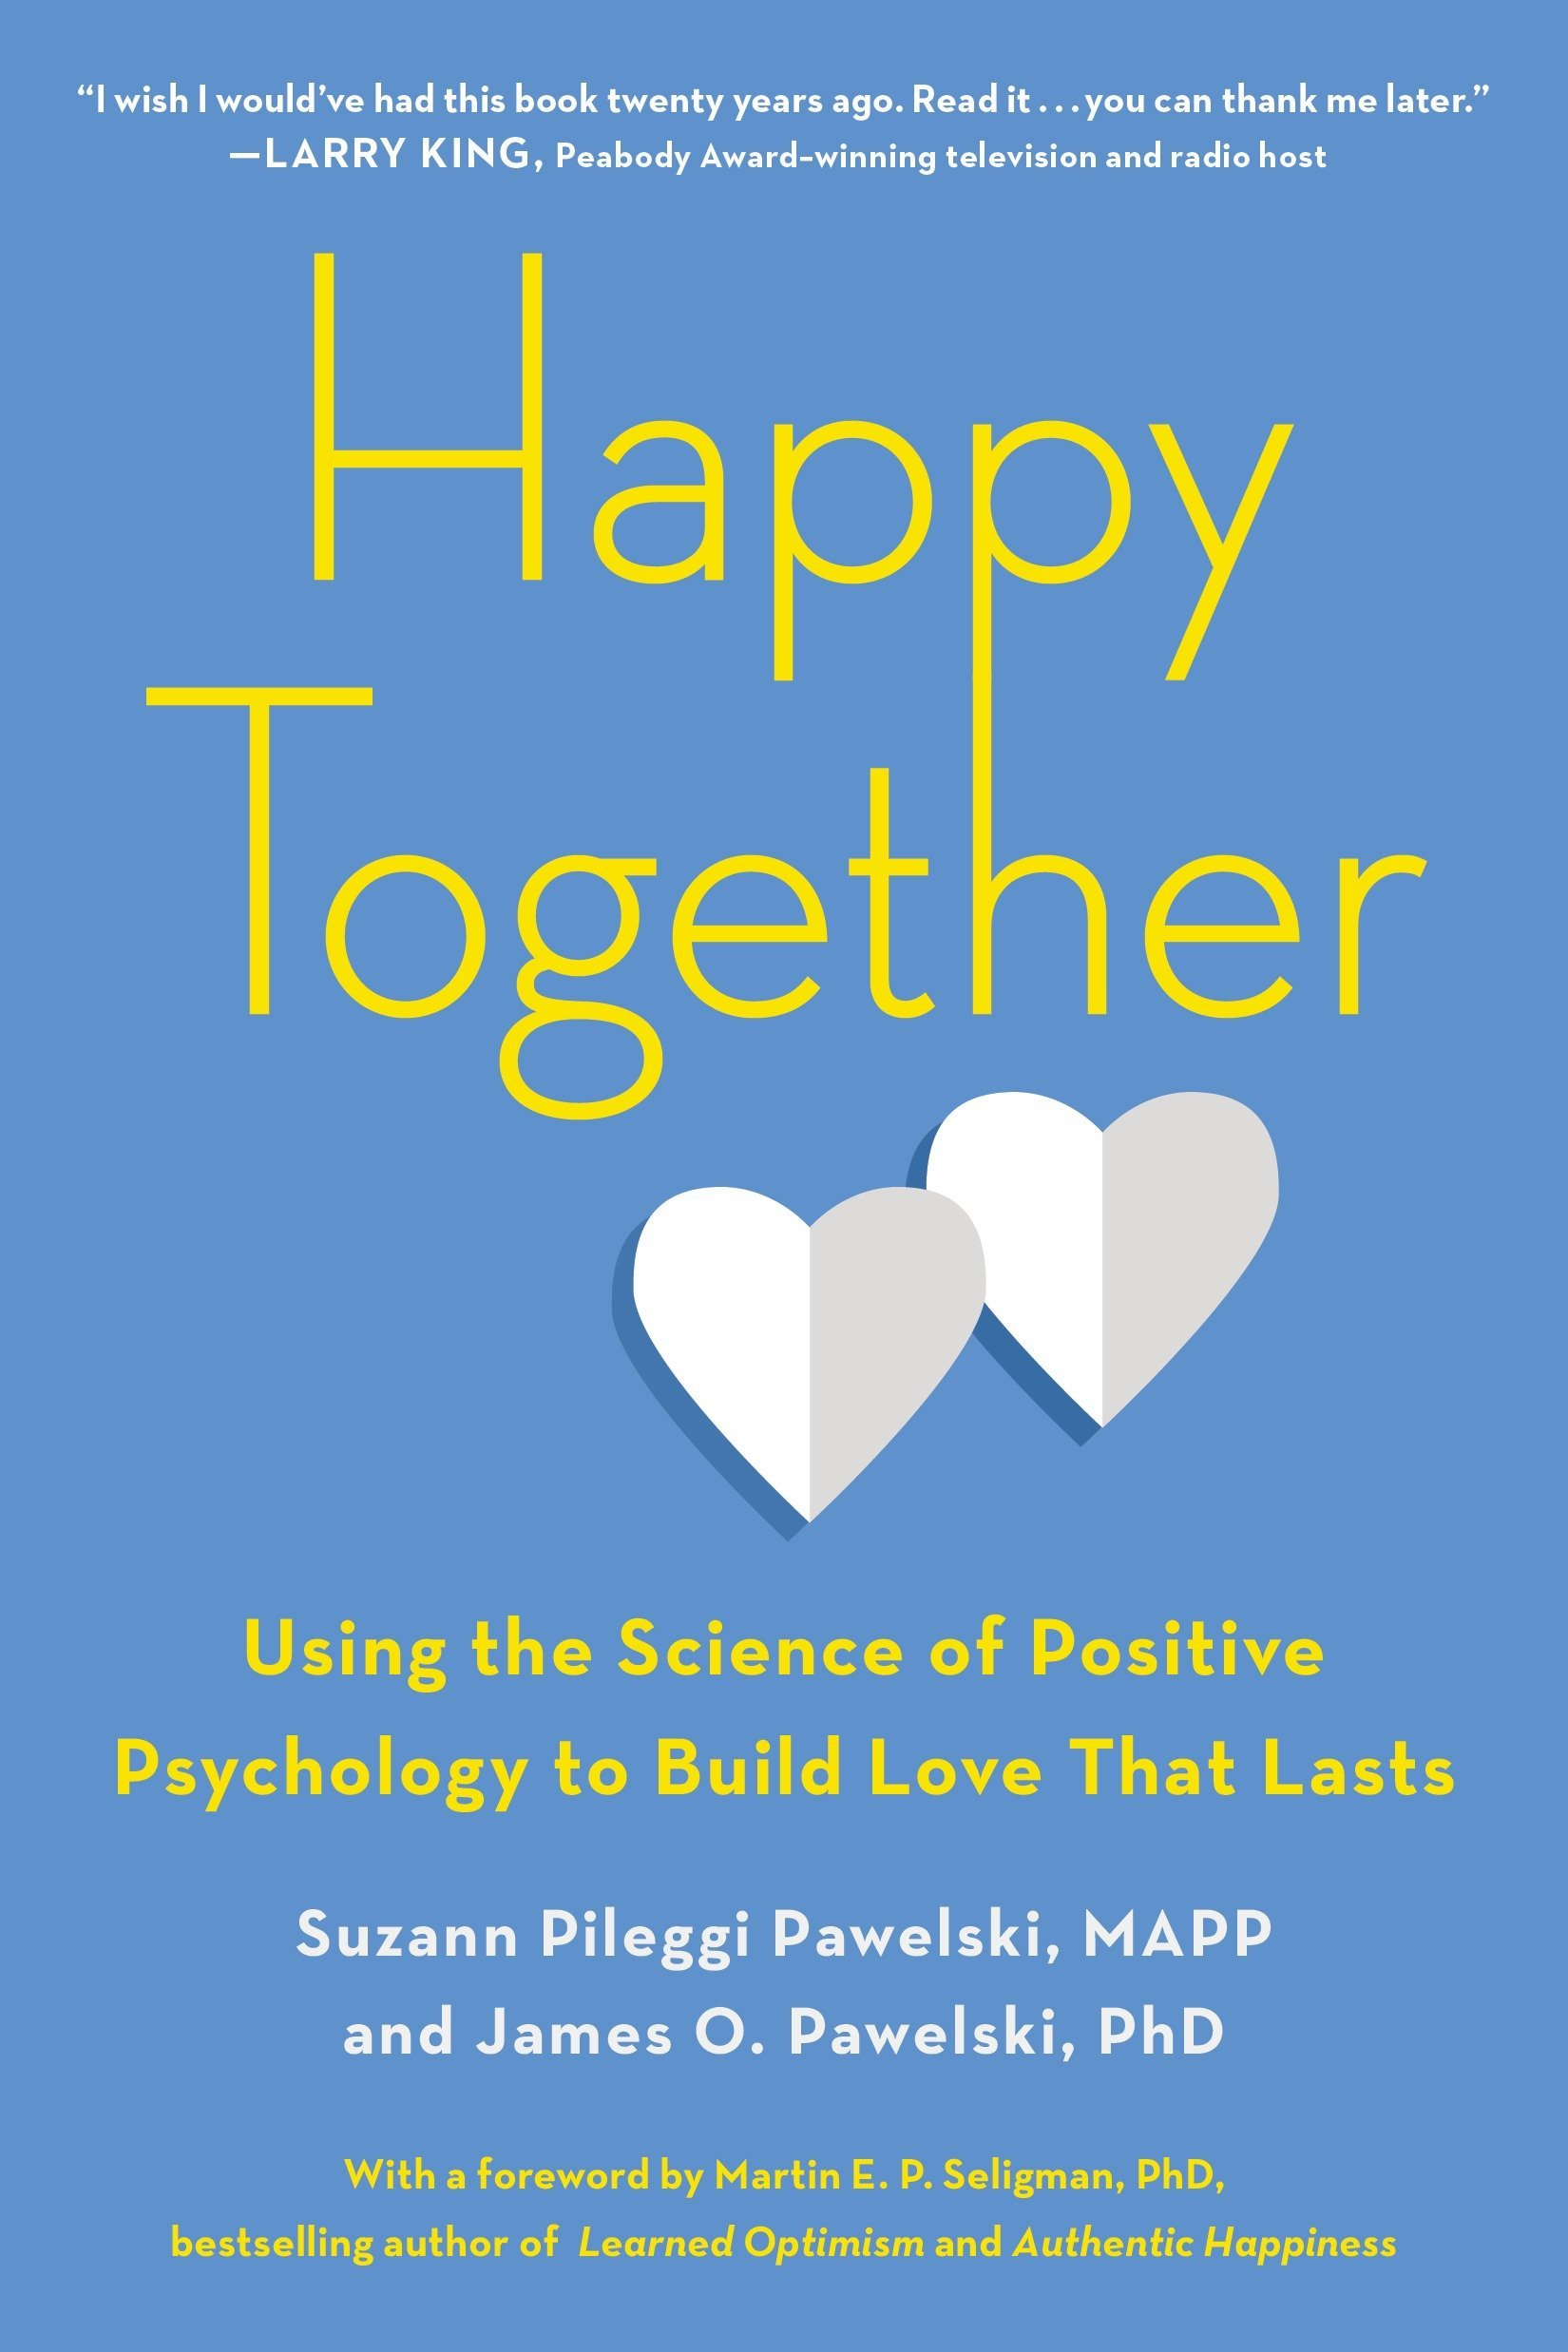 Happy together Suzann Pawelski and  James Pawelski book cover.